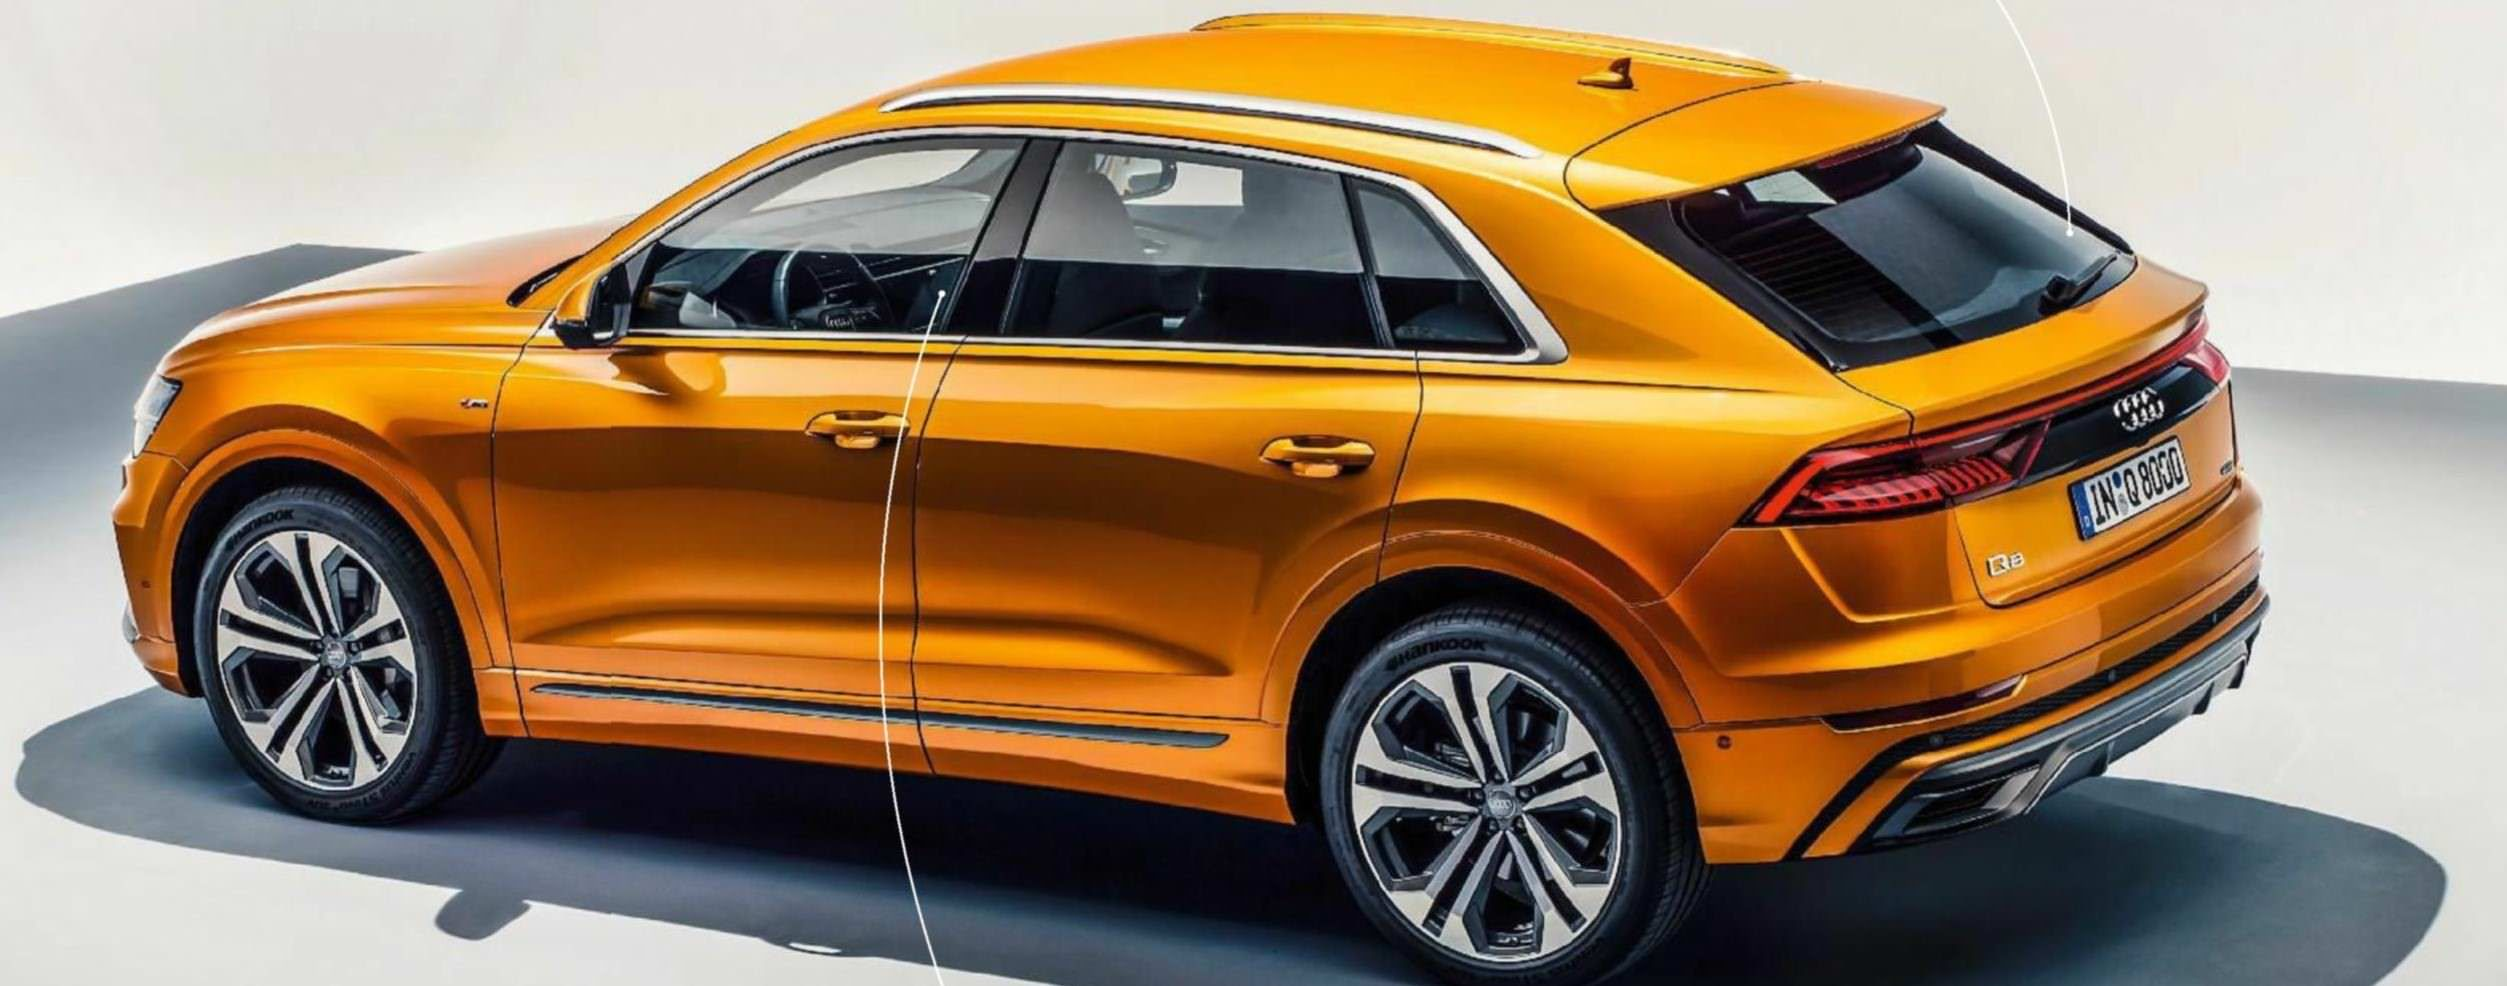 Audi Q8 Joins The CoupeSUV Party